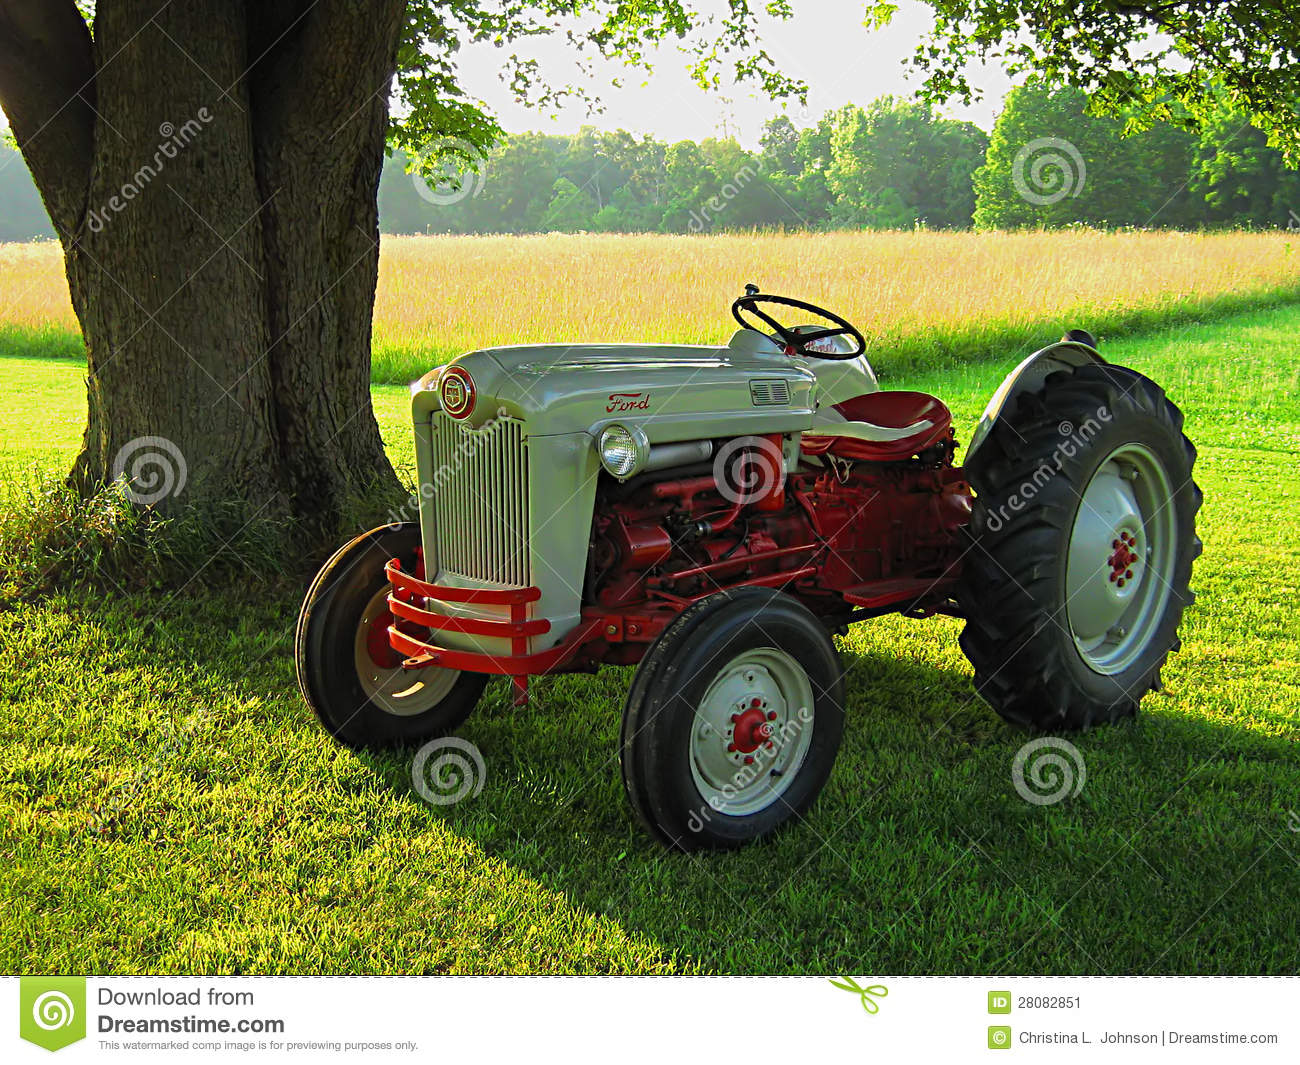 Old Ford Tractor Decals : Antique ford tractor editorial photo image of